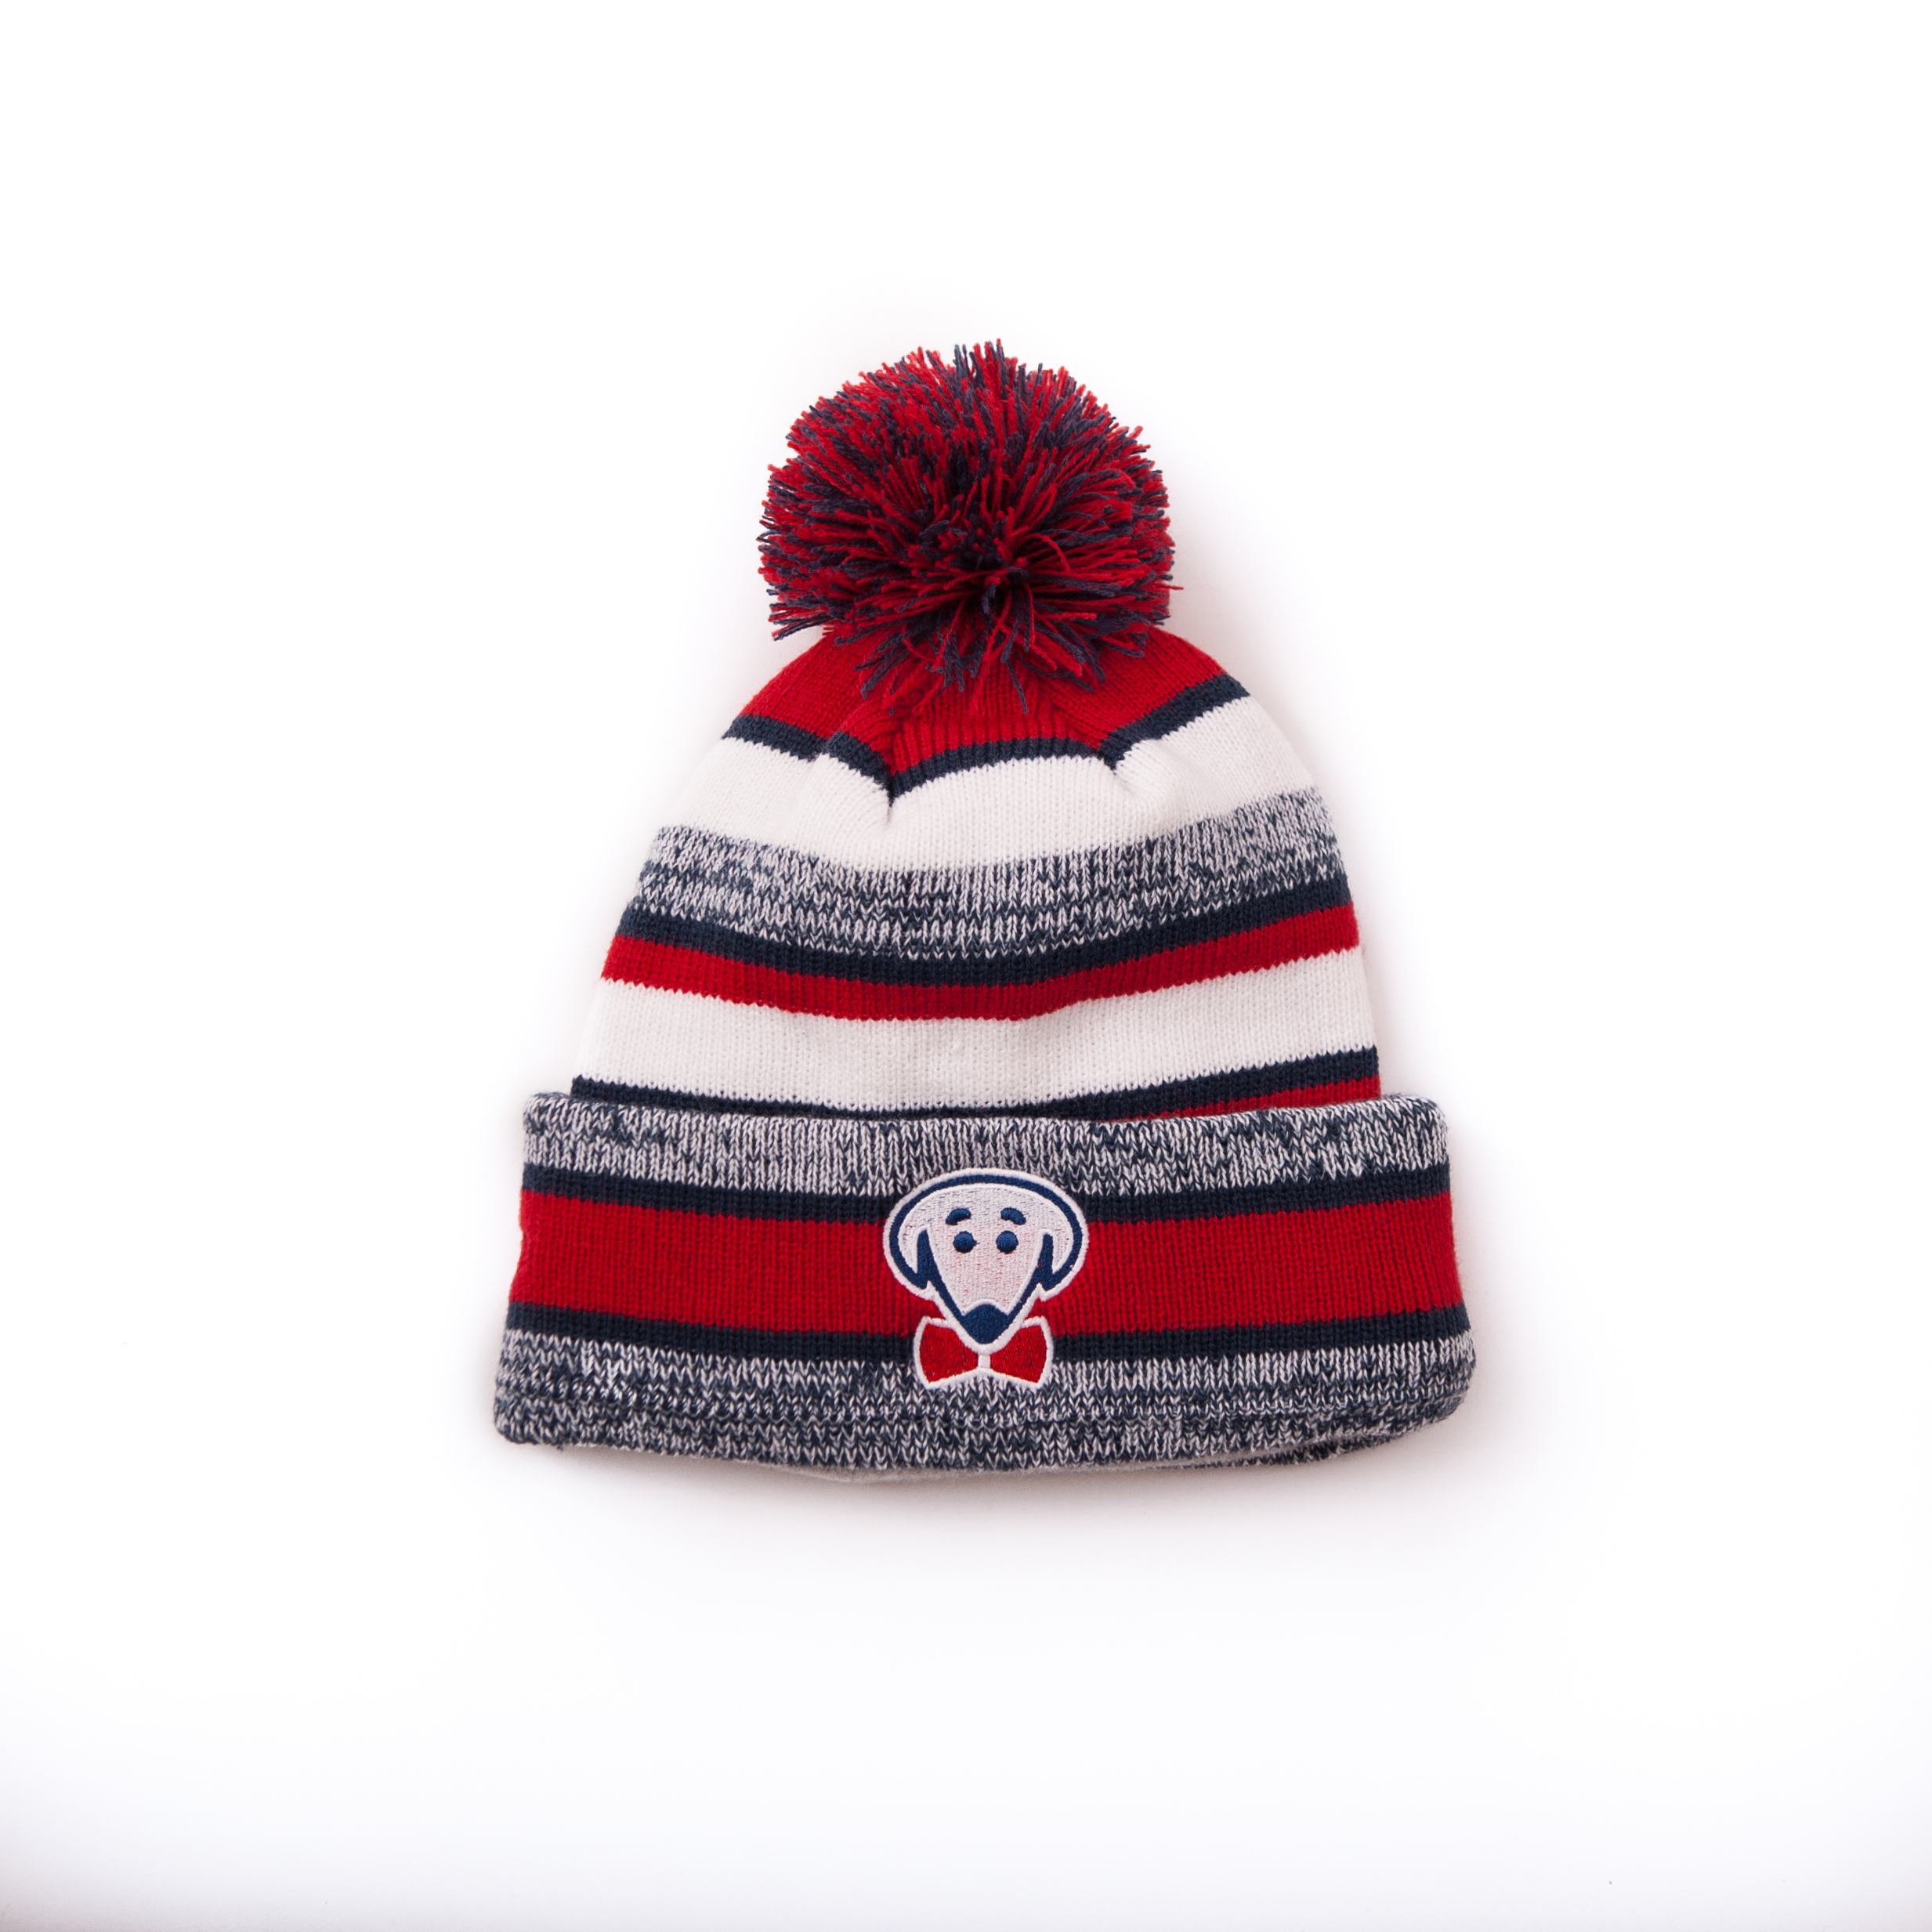 Fleece-lined BT winter hat with pom